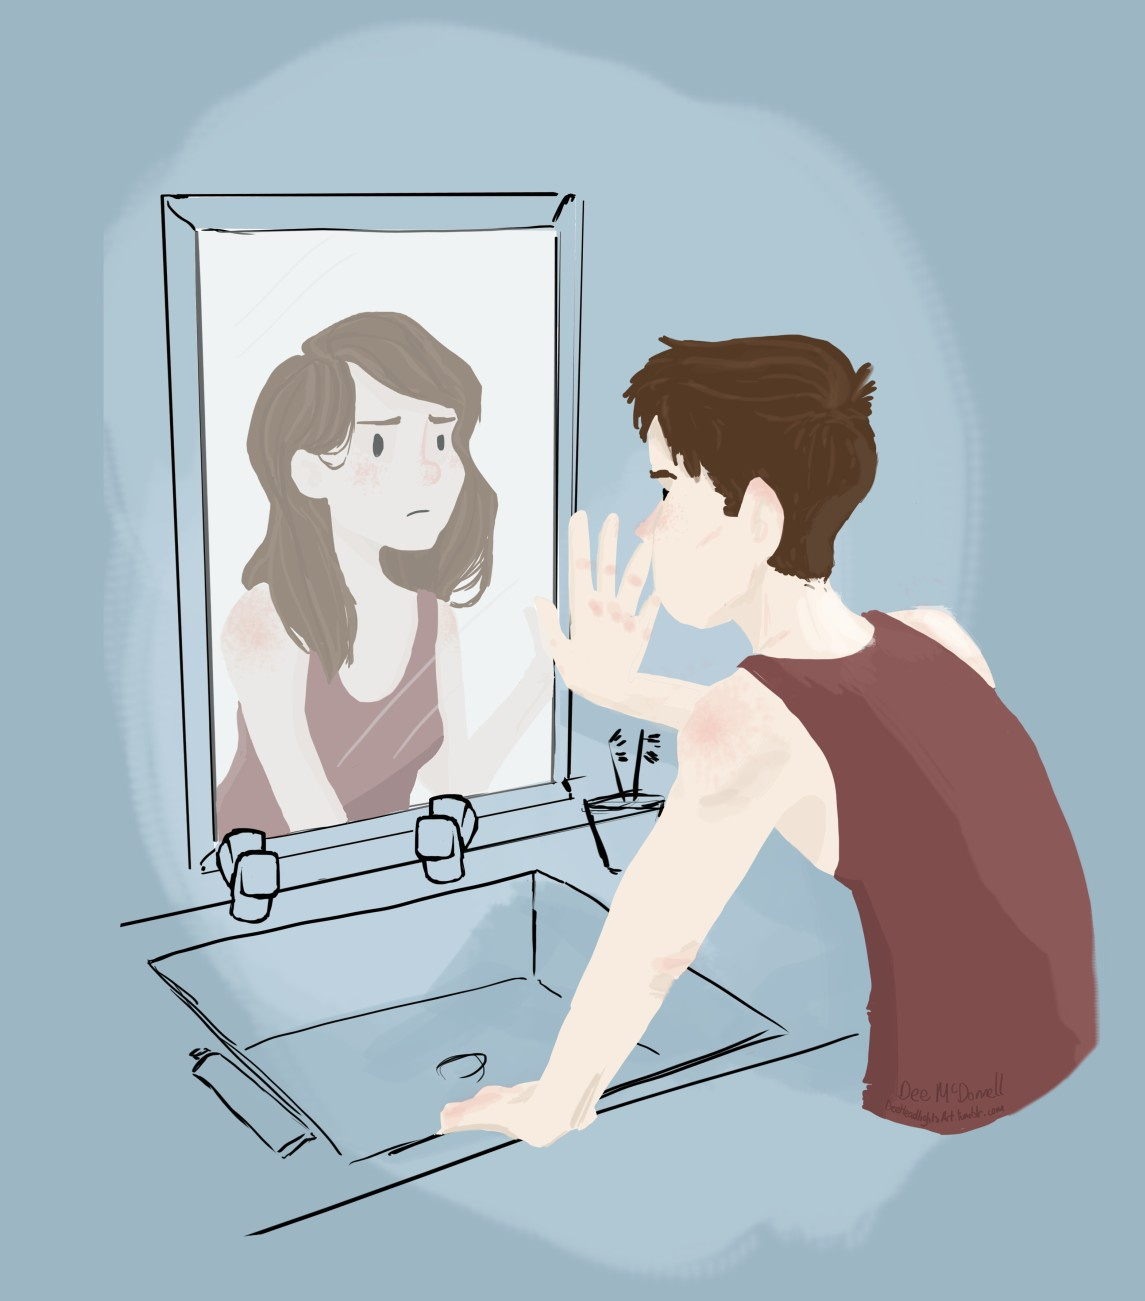 Did gender dysphoria make it hard for you to look to the future? - Quora